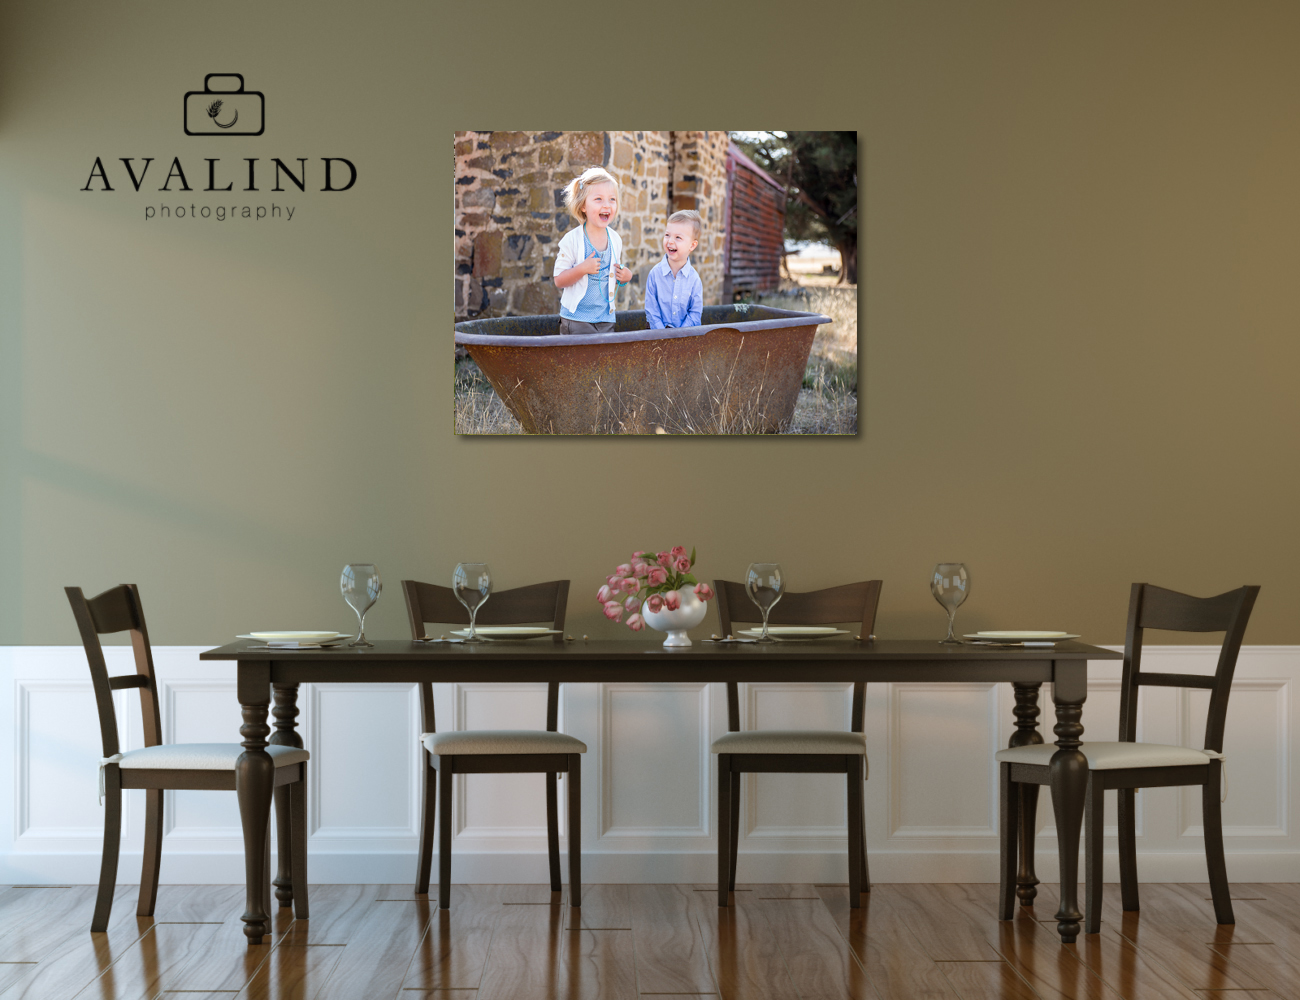 Wall Dining room example.jpg